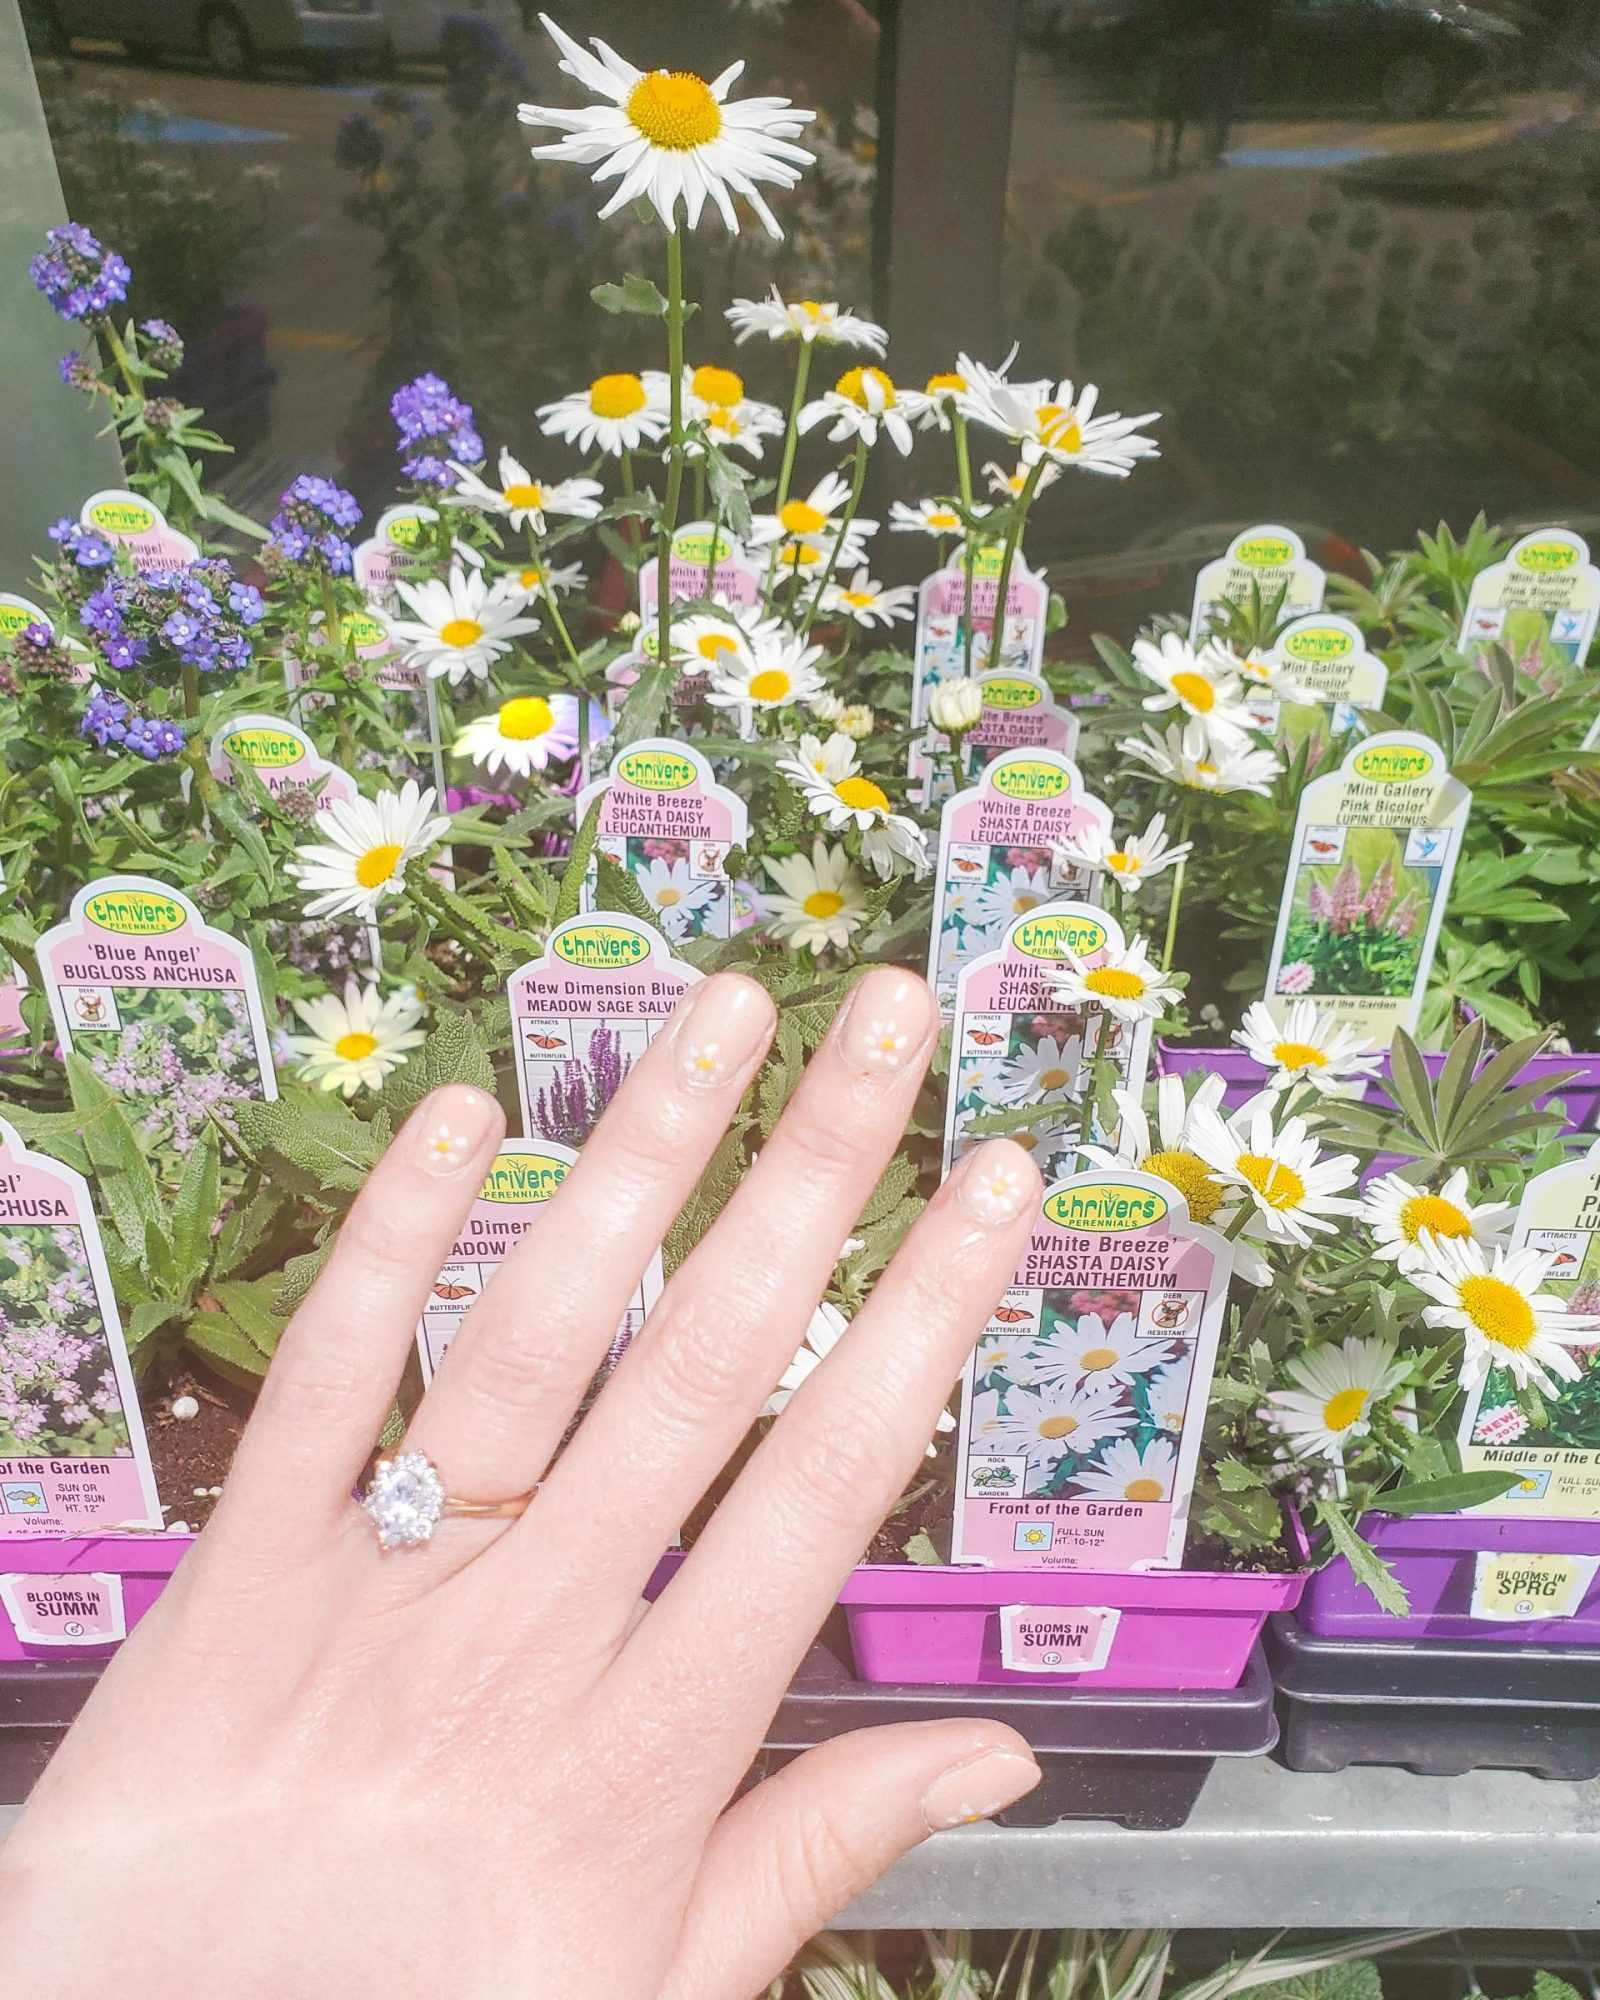 A manicured hand showing off the daisies painted on her nails in front of live daisy plants.